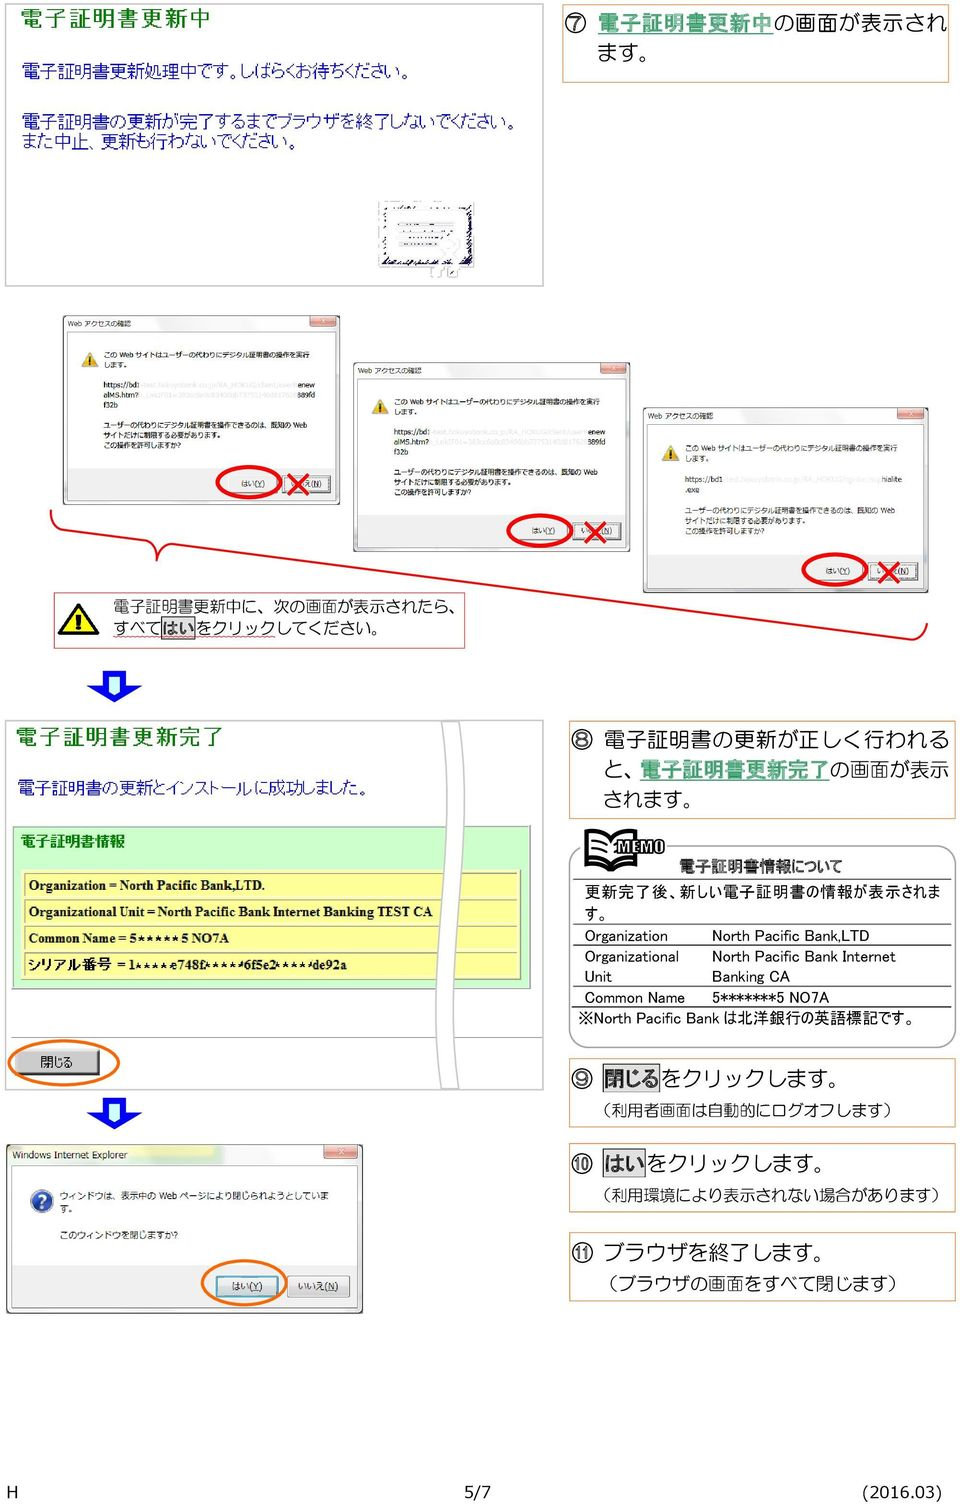 Organizational North Pacific Bank Internet Unit Banking CA Common Name 5*******5 NO7A North Pacific Bank は 北 洋 銀 行 の 英 語 標 記 です 9